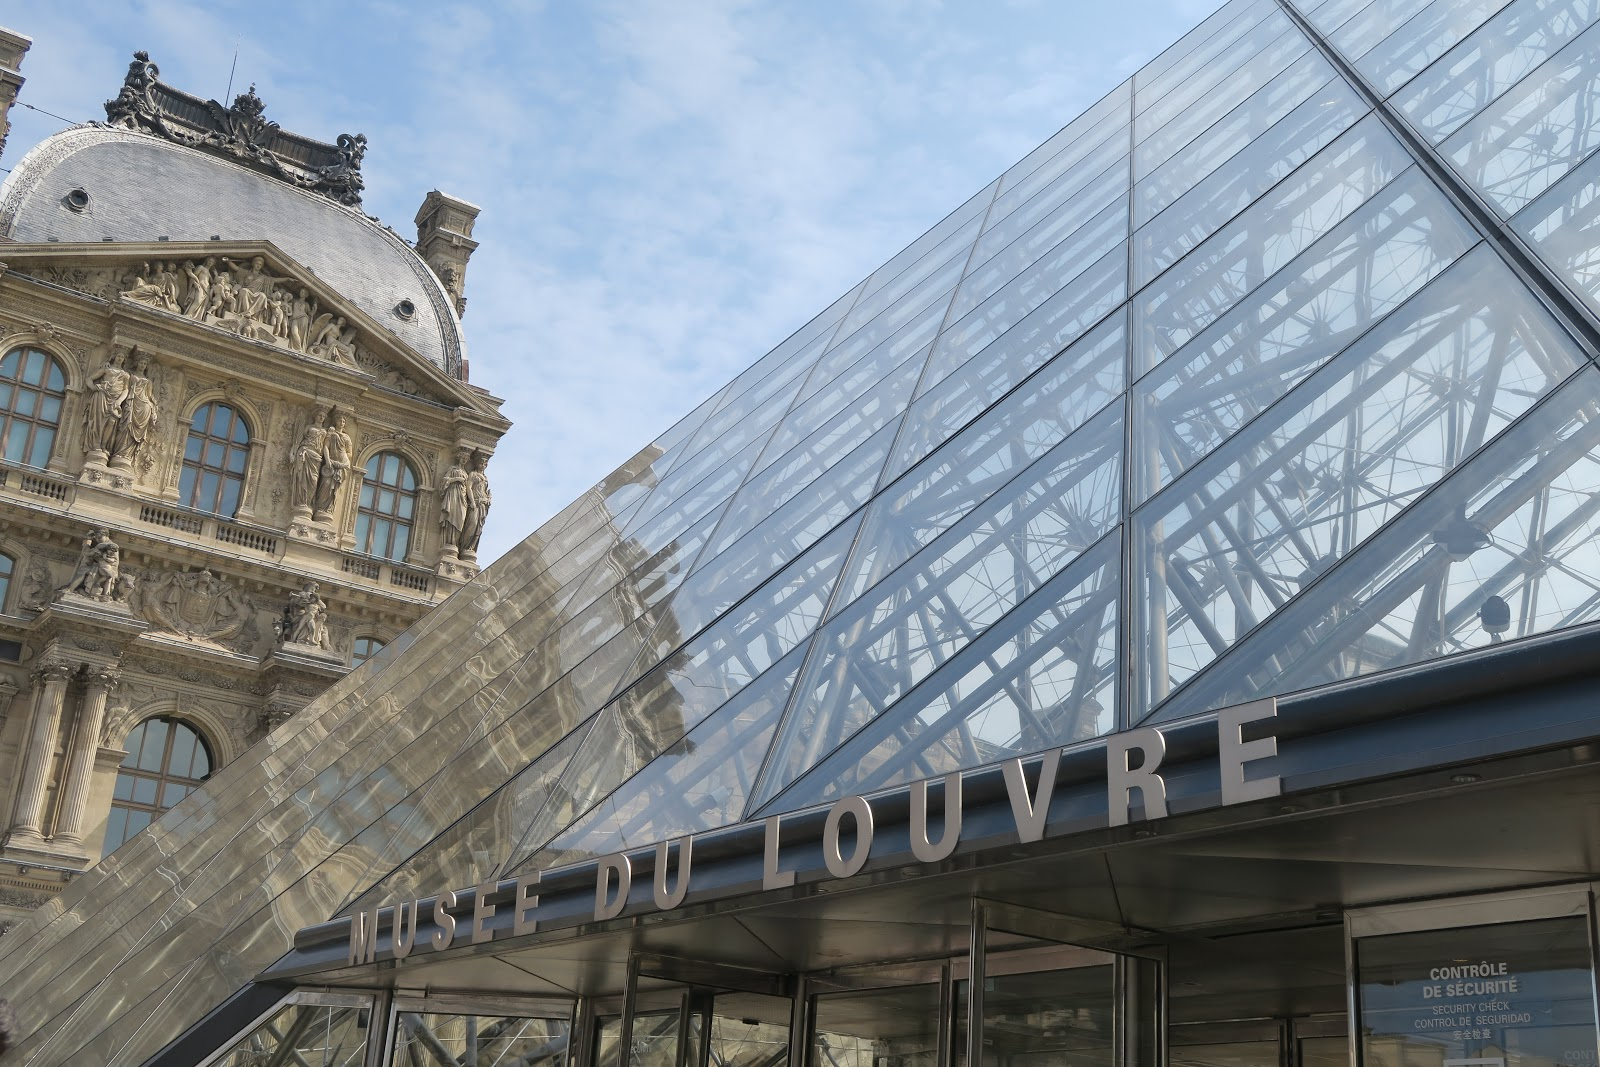 Exterior of the Louvre featuring a glass pyramid